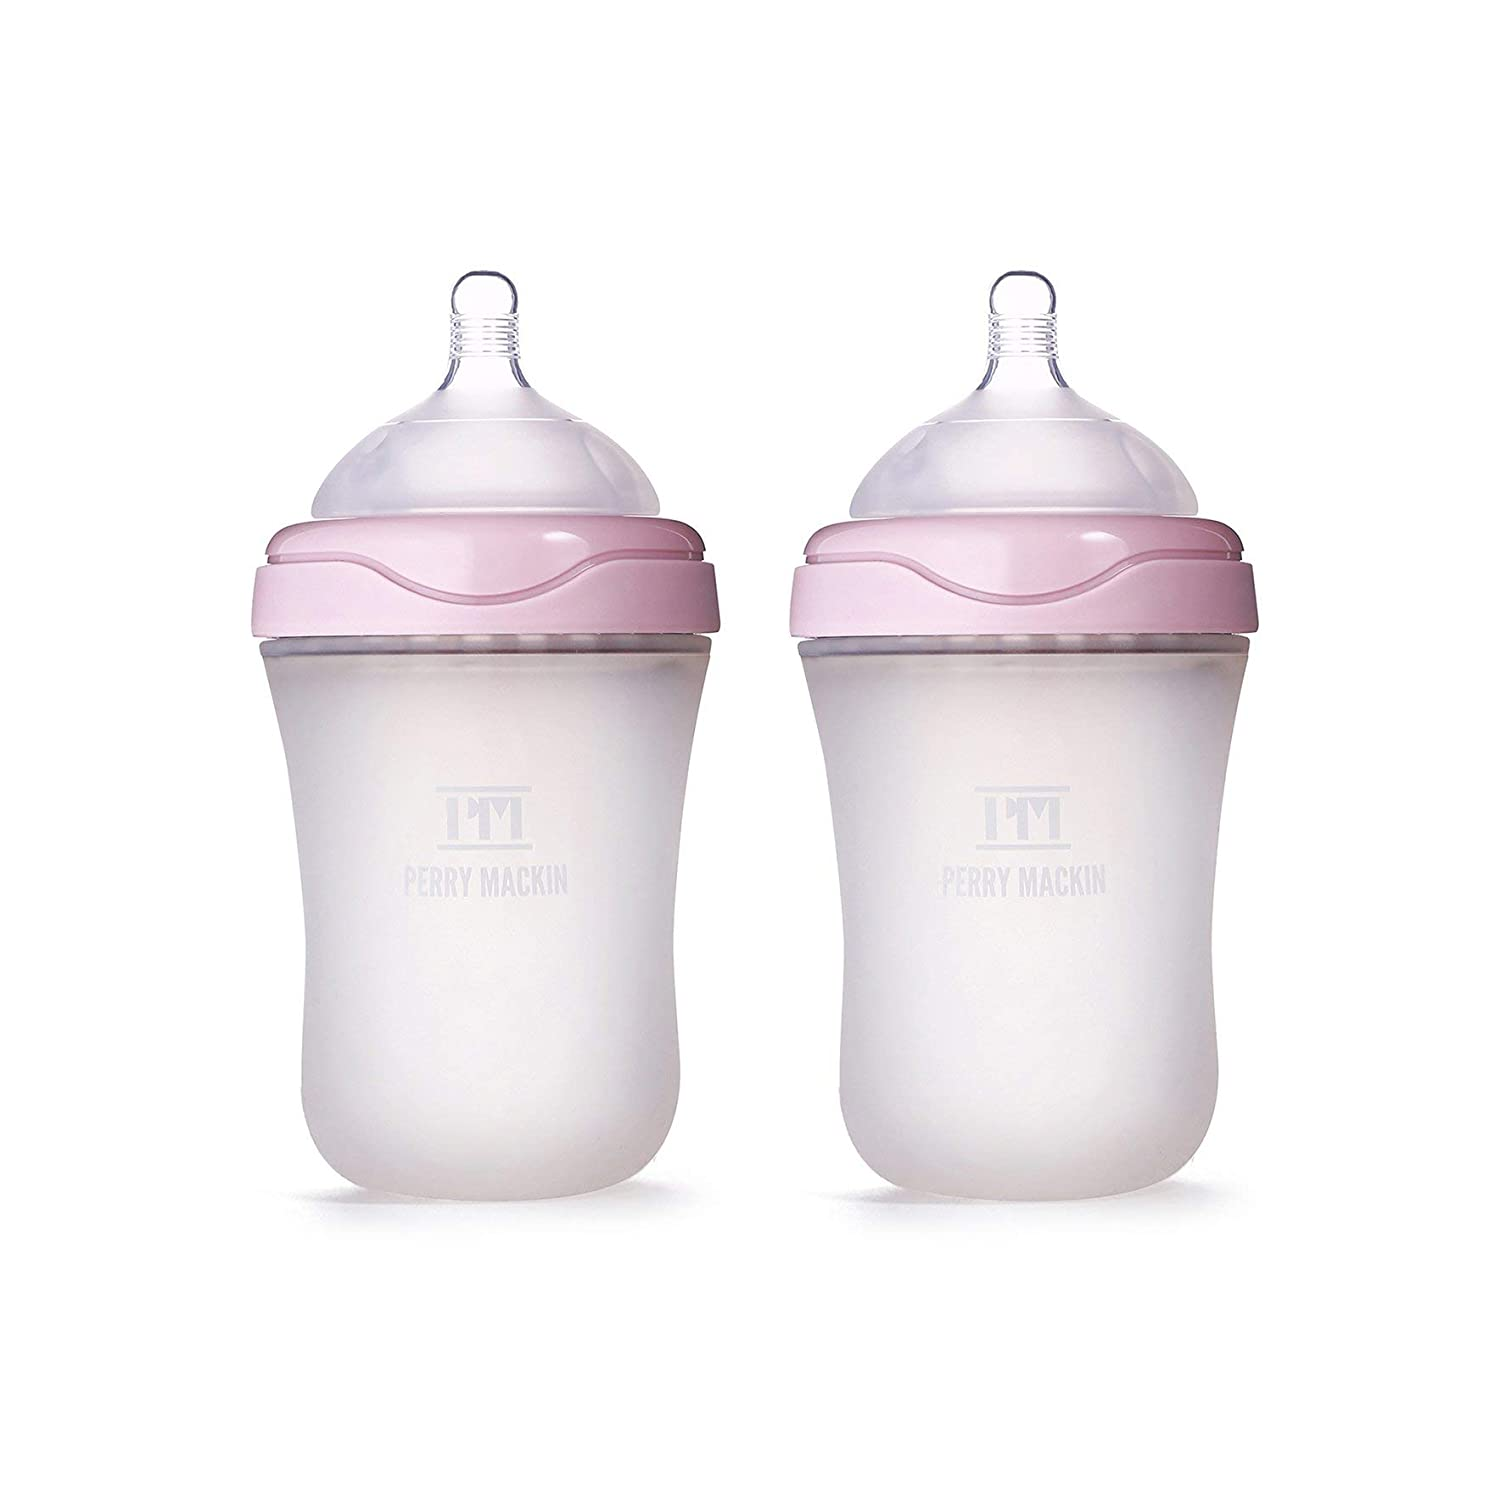 01ee600364d3 Perry Mackin Natural Feel, Anti-Colic, Soft Silicone Baby Bottle - 2 Pack  of 6oz Slow Flow, Pink